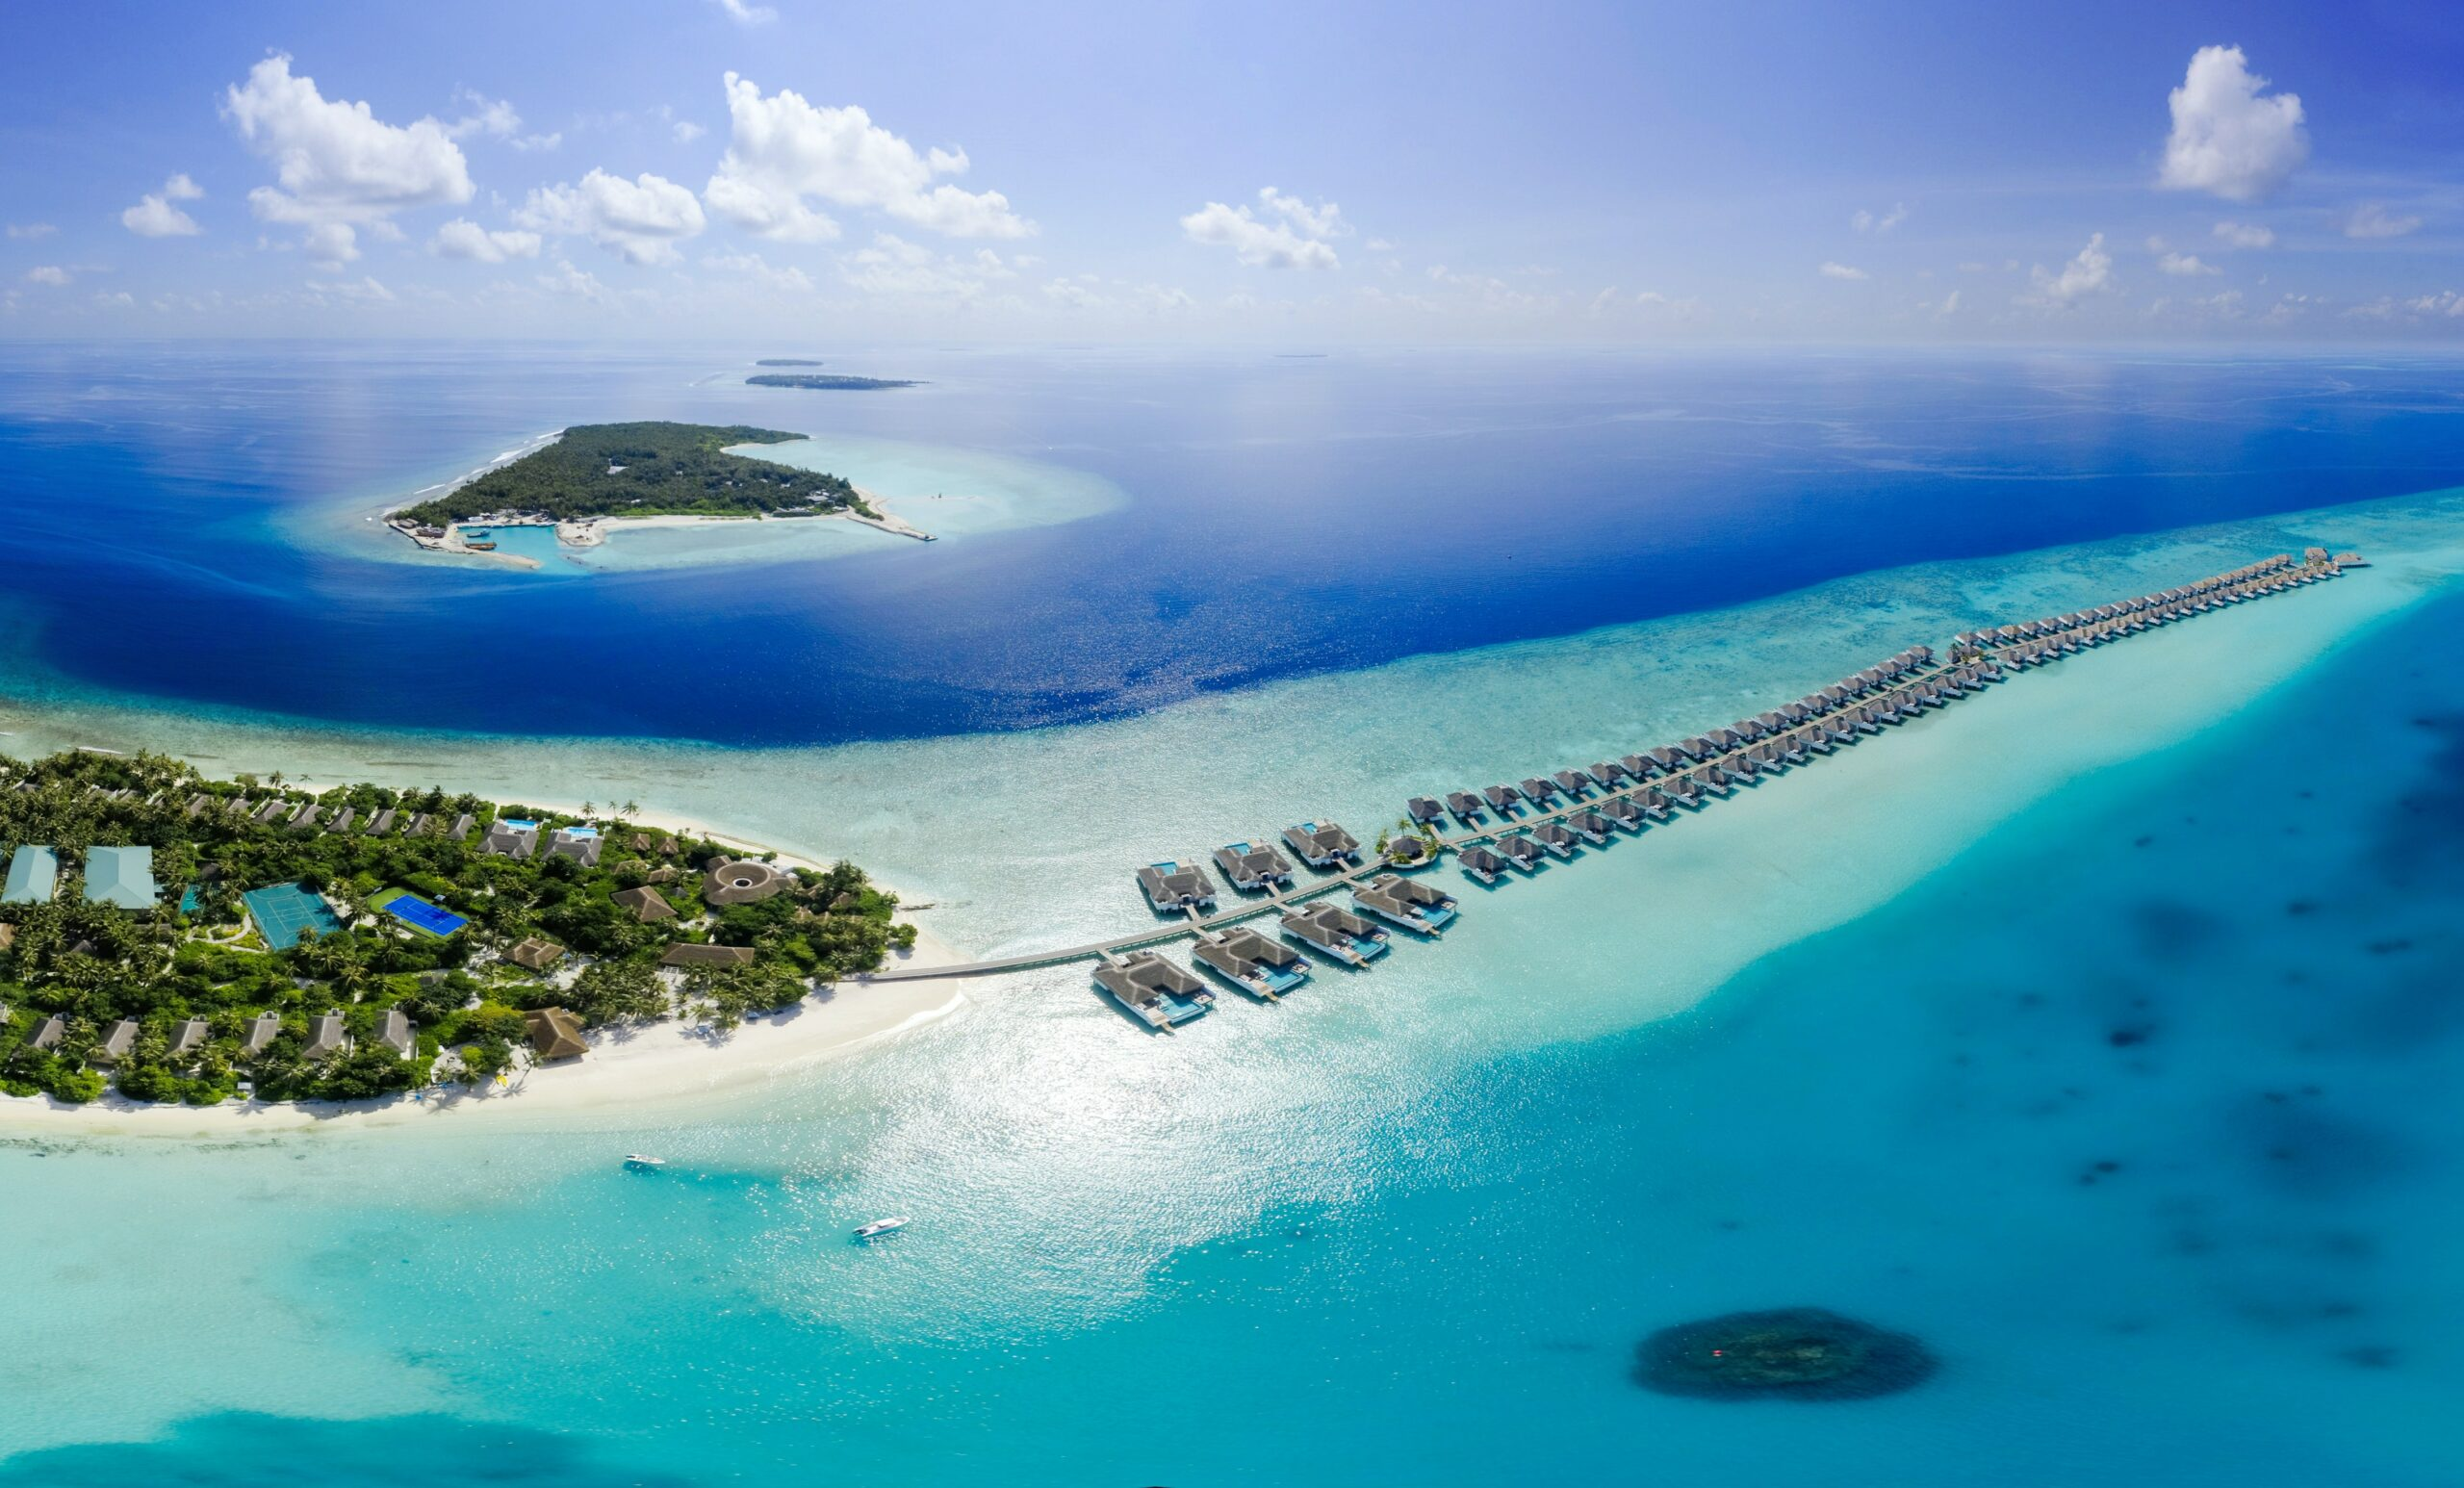 The country of Maldives in South Asia